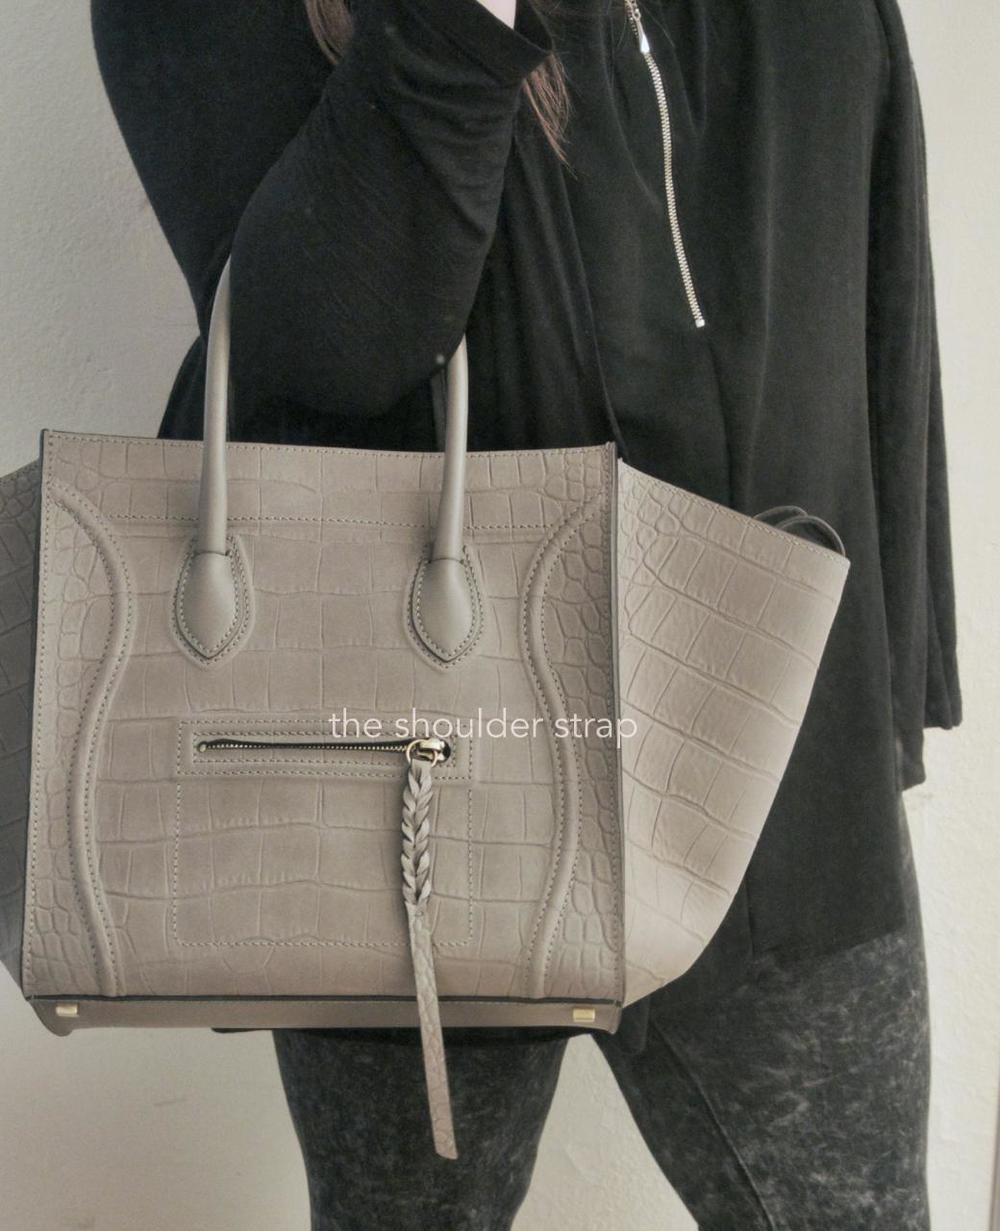 celine bags online shop - C��line Grey Croc Stamped Phantom �� The Shoulder Strap